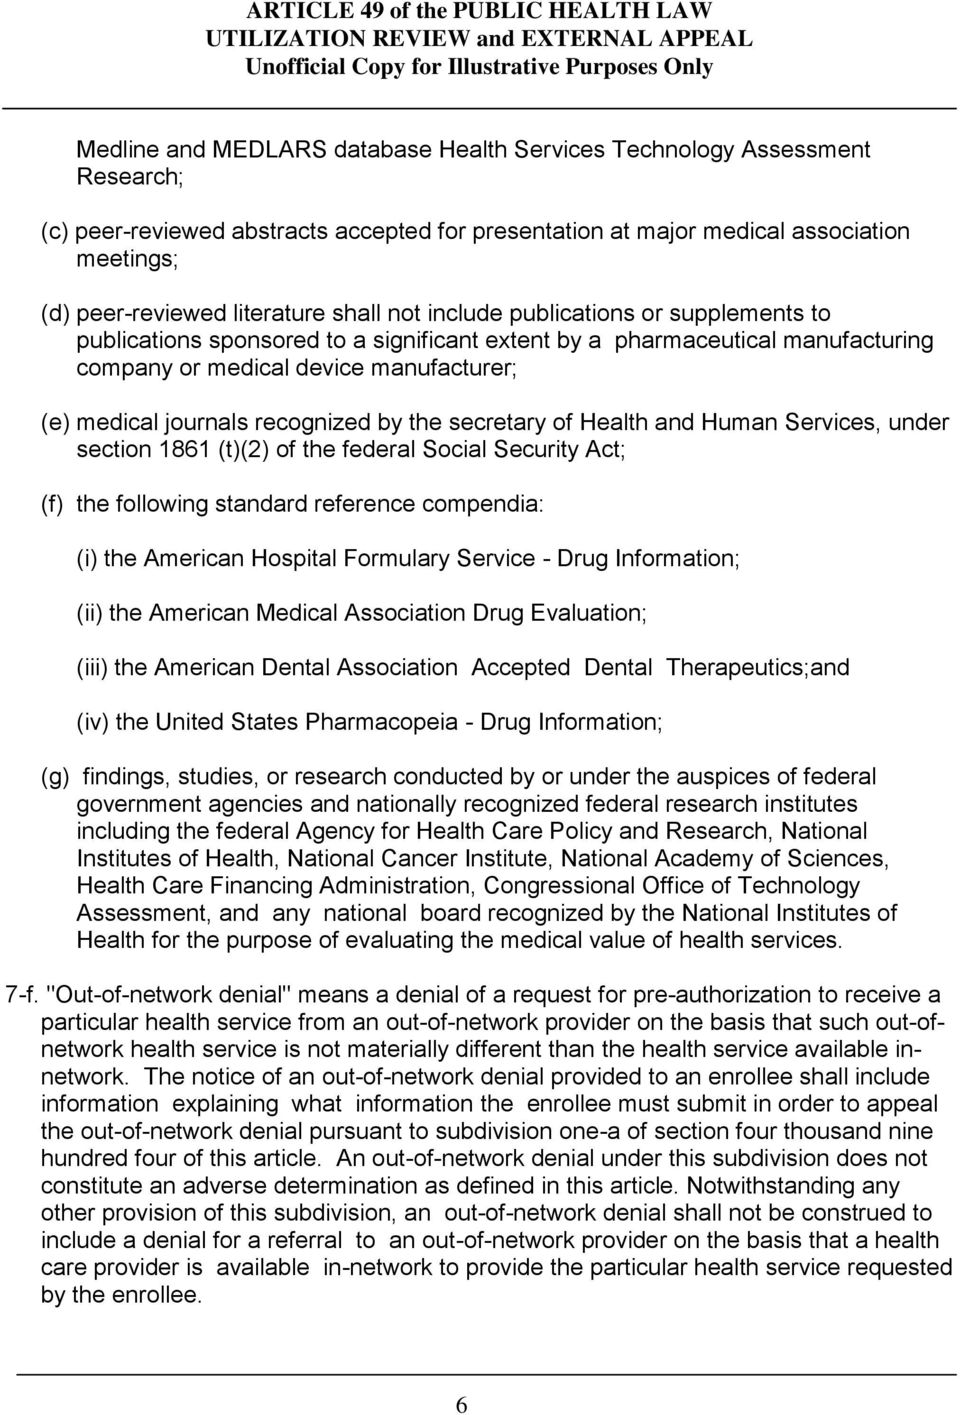 recognized by the secretary of Health and Human Services, under section 1861 (t)(2) of the federal Social Security Act; (f) the following standard reference compendia: (i) the American Hospital